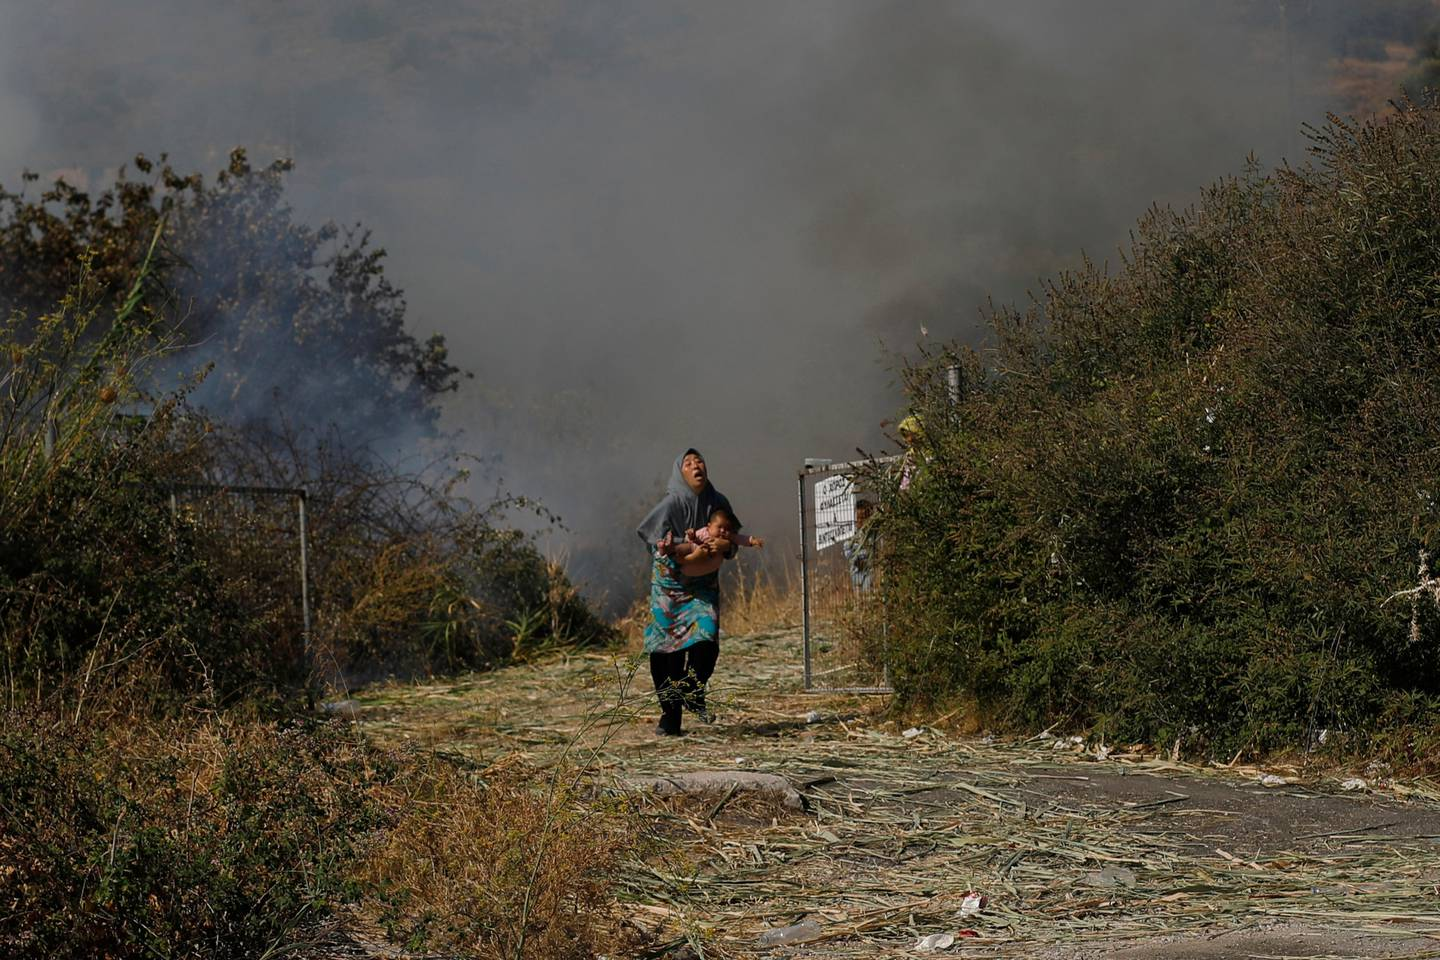 A migrant holds her baby as she runs to avoid a small fire in a field near Mytilene town, on the northeastern island of Lesbos, Greece, Saturday, Sept. 12, 2020. Greek authorities have been scrambling to find a way to house more than 12,000 people left in need of emergency shelter on the island after the fires deliberately set on Tuesday and Wednesday night gutted the Moria refugee camp. (AP Photo/Petros Giannakouris)